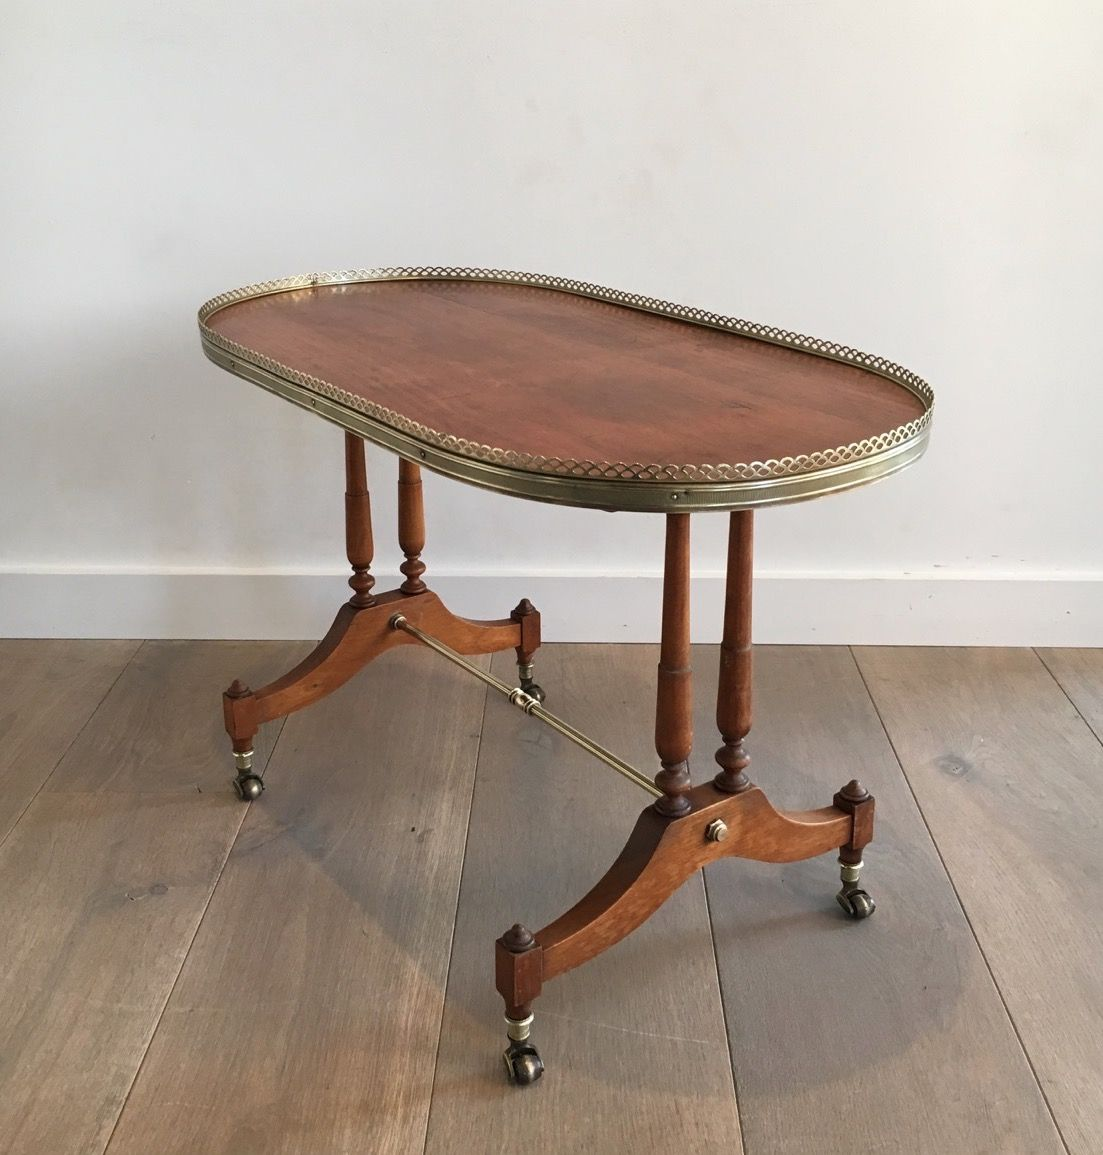 Small Neoclassical Oval Coffee Table 1940s for sale at Pamono